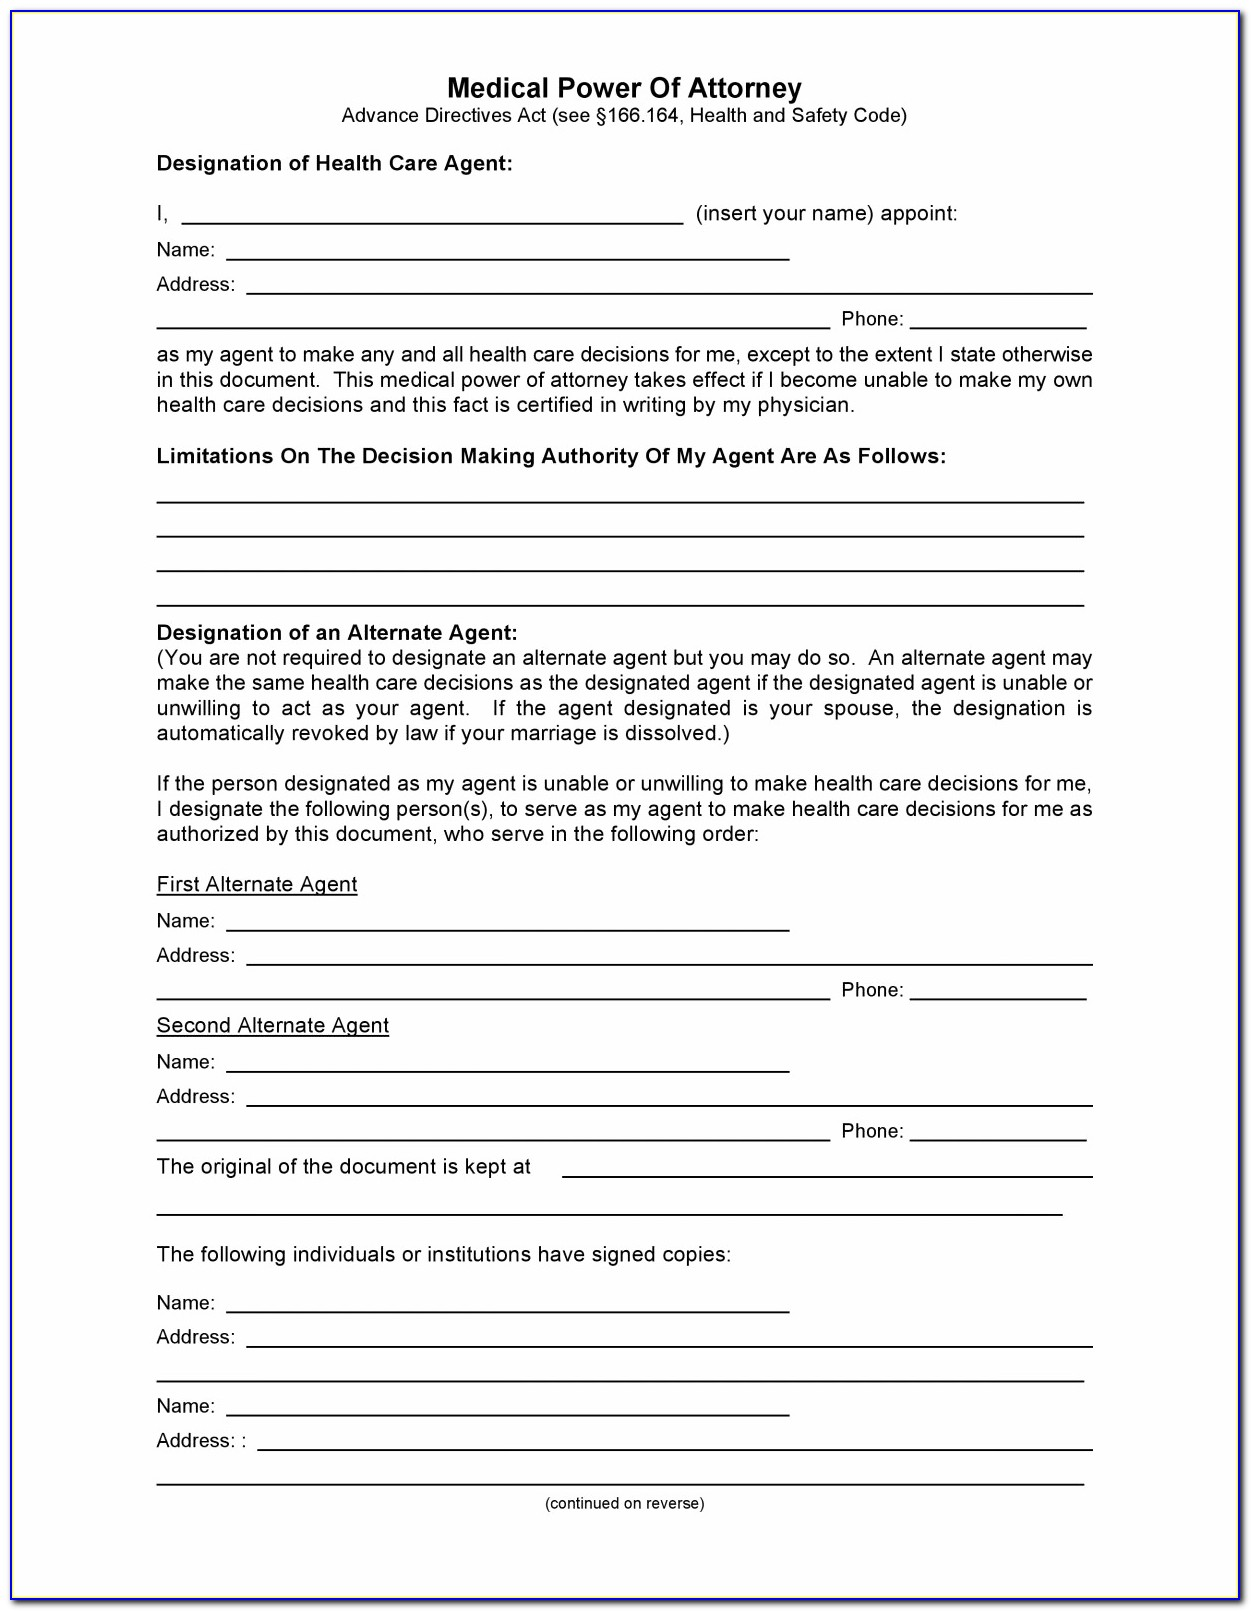 Power Of Attorney Form New Mexico